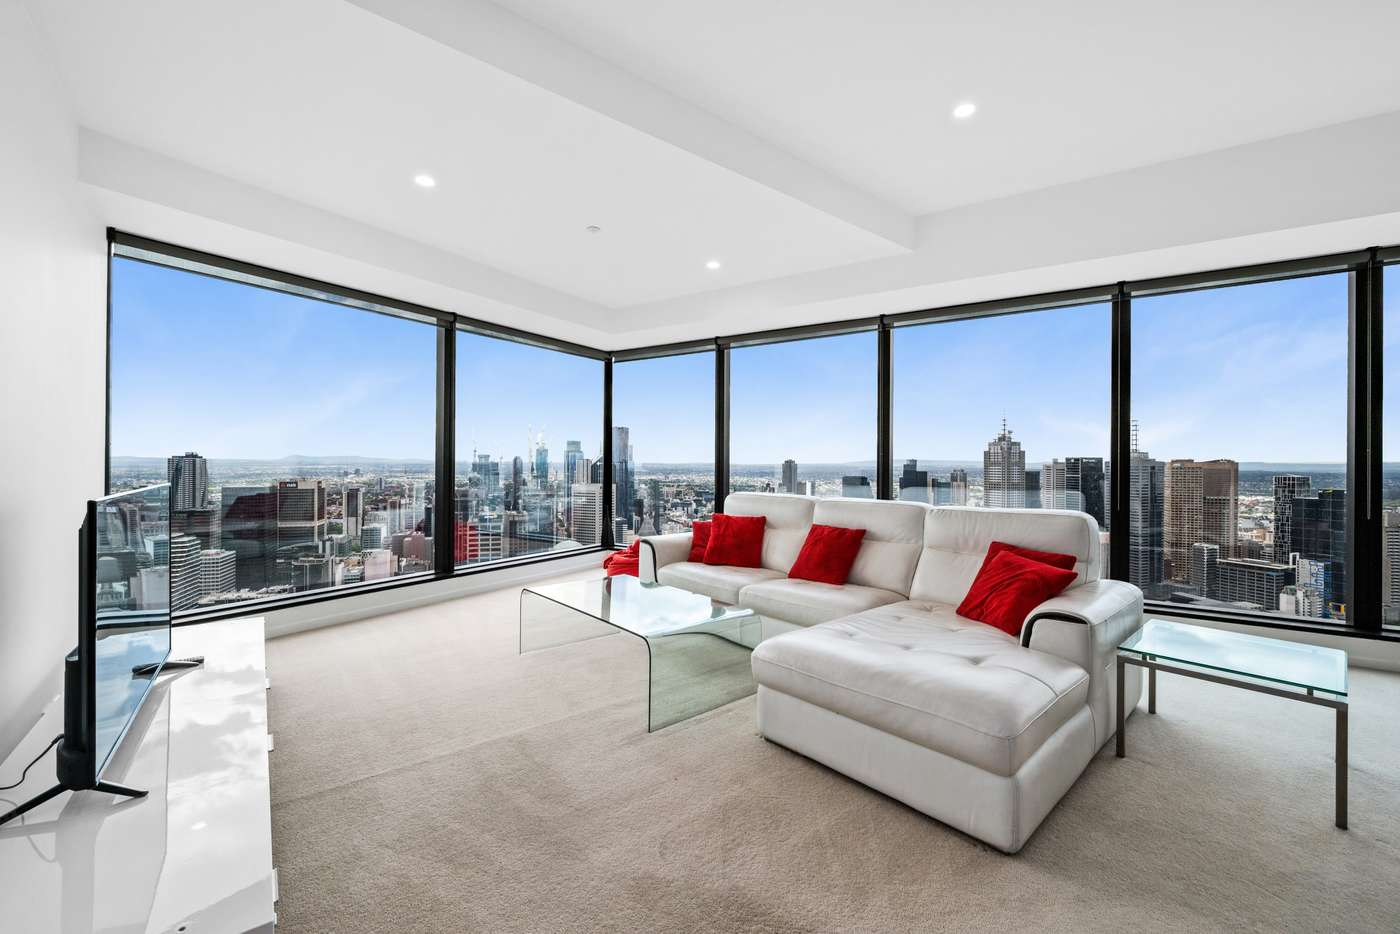 Main view of Homely apartment listing, 6307/7 Riverside Quay, Southbank VIC 3006